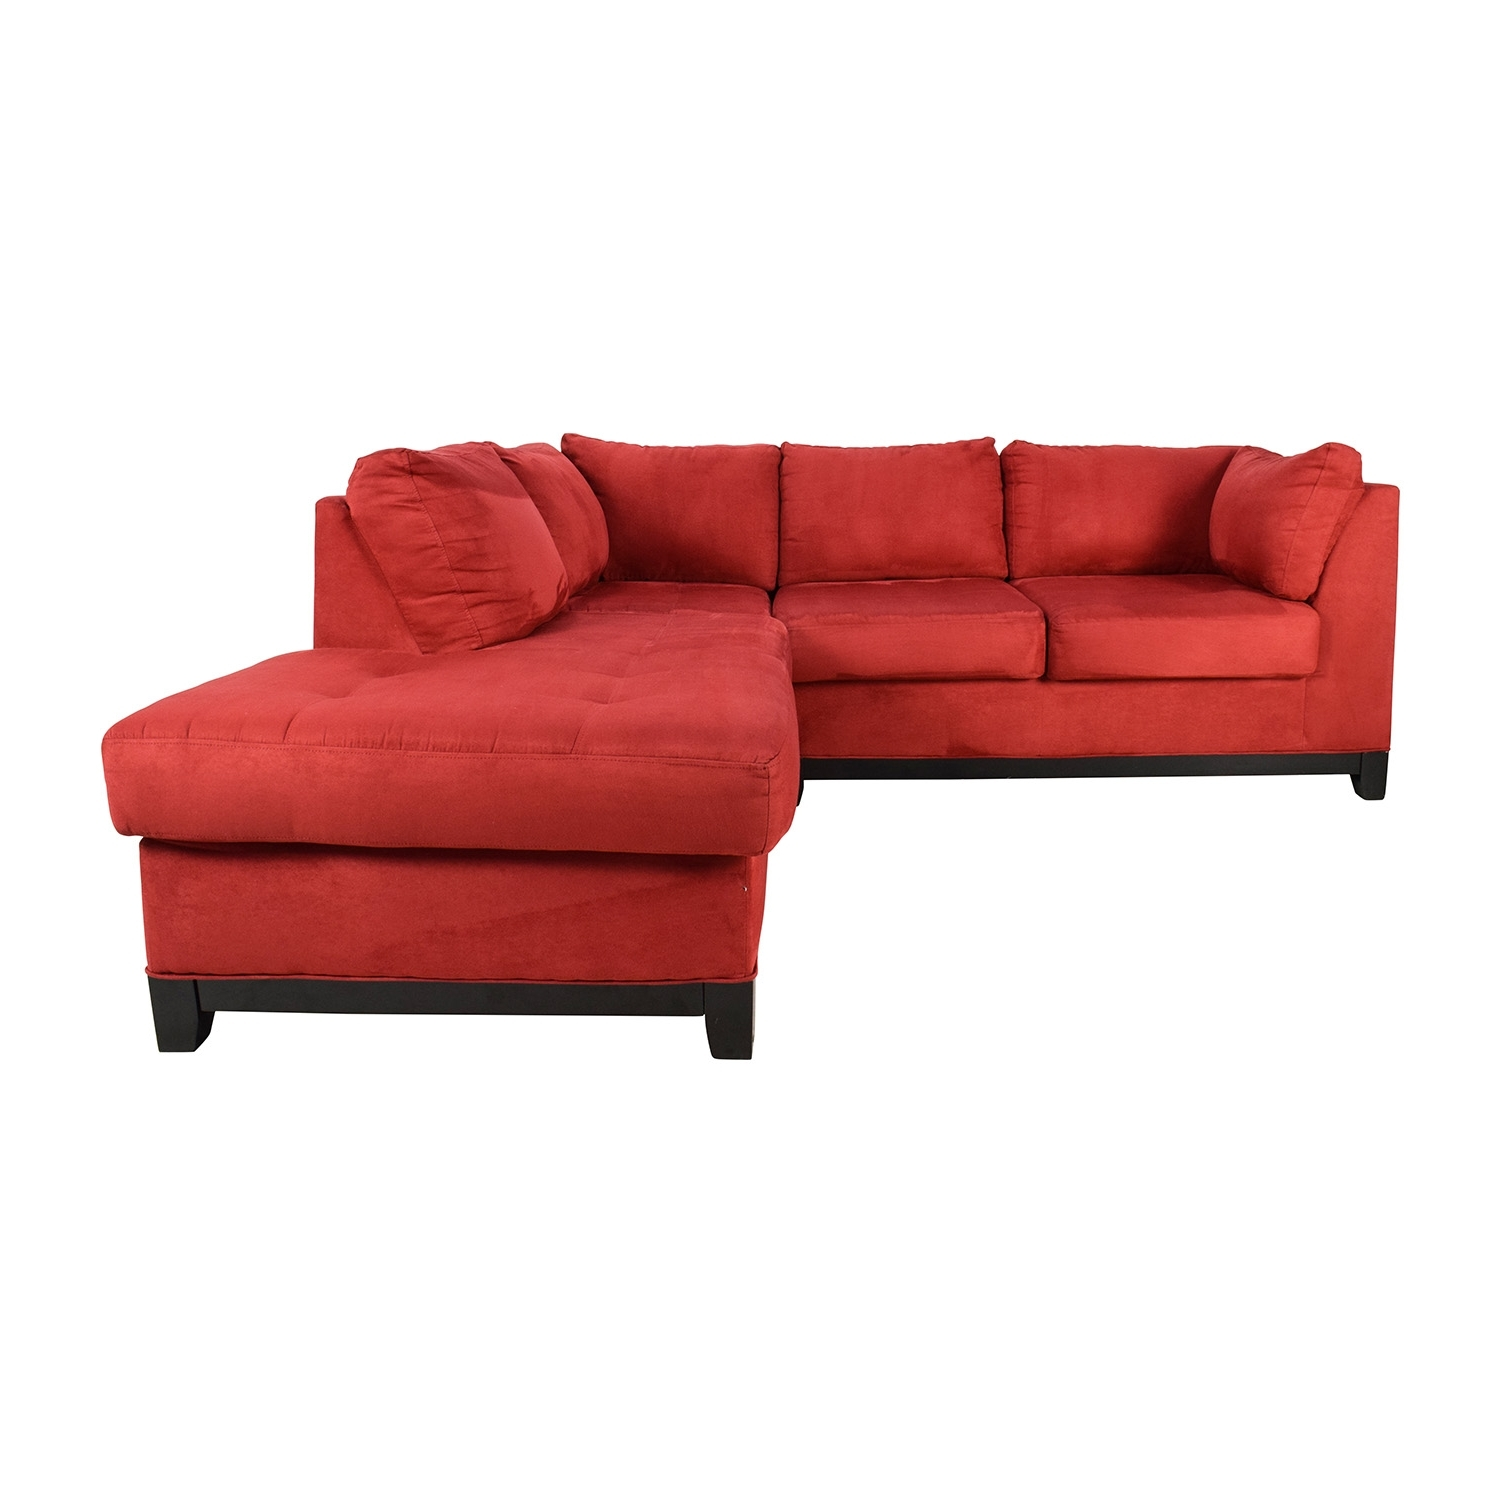 [%67% Off – Raymour And Flanigan Raymour & Flanigan Zella Red Within Well Liked Sectional Sofas At Raymour And Flanigan|Sectional Sofas At Raymour And Flanigan Within Most Recent 67% Off – Raymour And Flanigan Raymour & Flanigan Zella Red|Recent Sectional Sofas At Raymour And Flanigan Pertaining To 67% Off – Raymour And Flanigan Raymour & Flanigan Zella Red|Most Up To Date 67% Off – Raymour And Flanigan Raymour & Flanigan Zella Red In Sectional Sofas At Raymour And Flanigan%] (View 6 of 20)